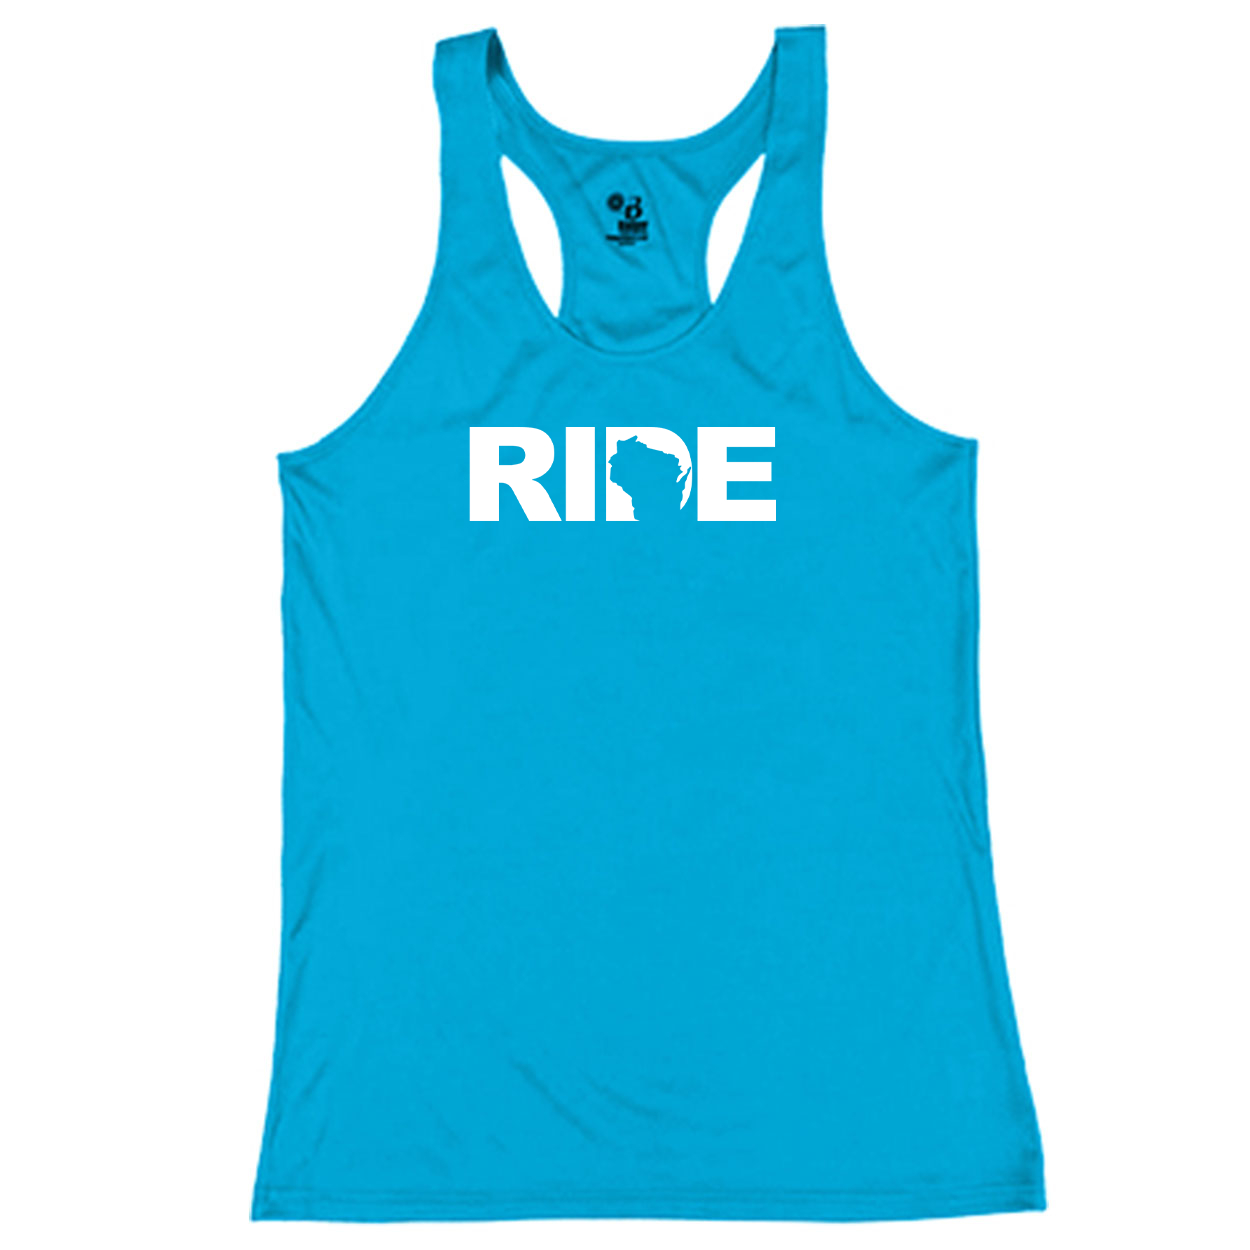 Ride Wisconsin Classic Youth Girls Performance Racerback Tank Top Electric Blue (White Logo)